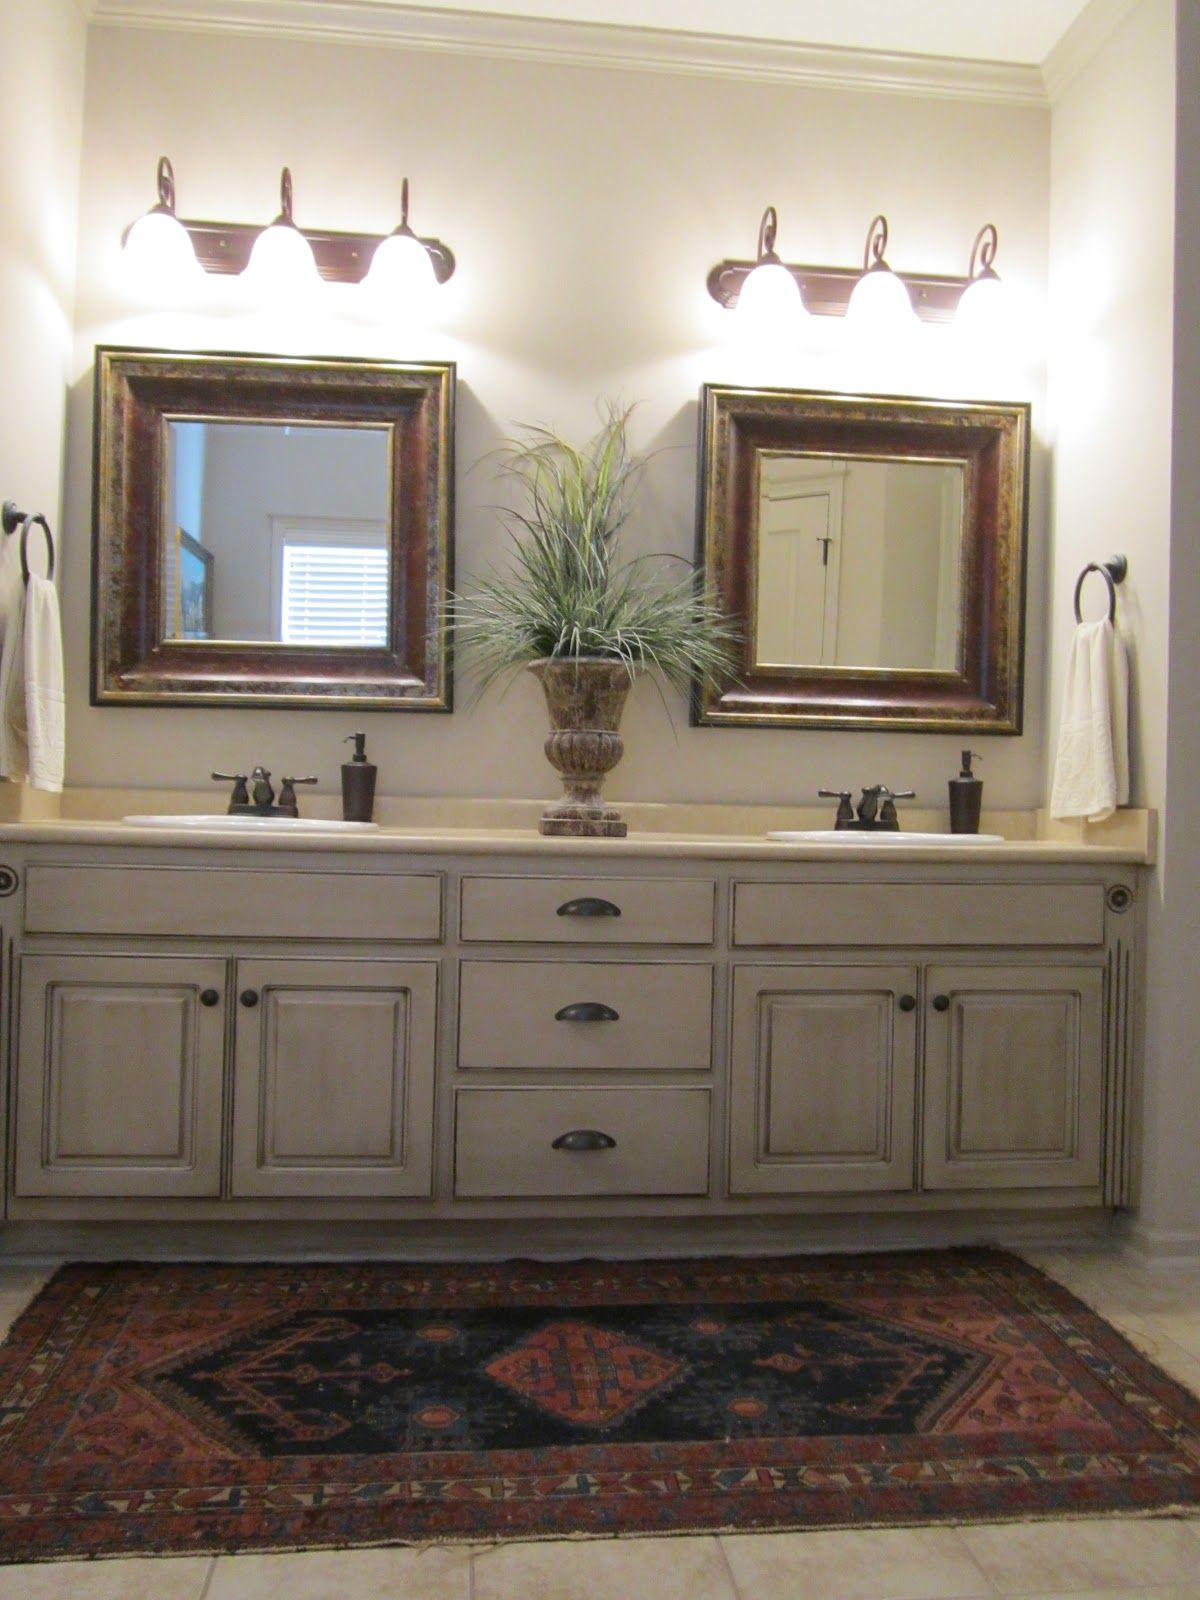 Painted Bathroom Vanity Love These Painted Bathroom Cabinets And The Lights What